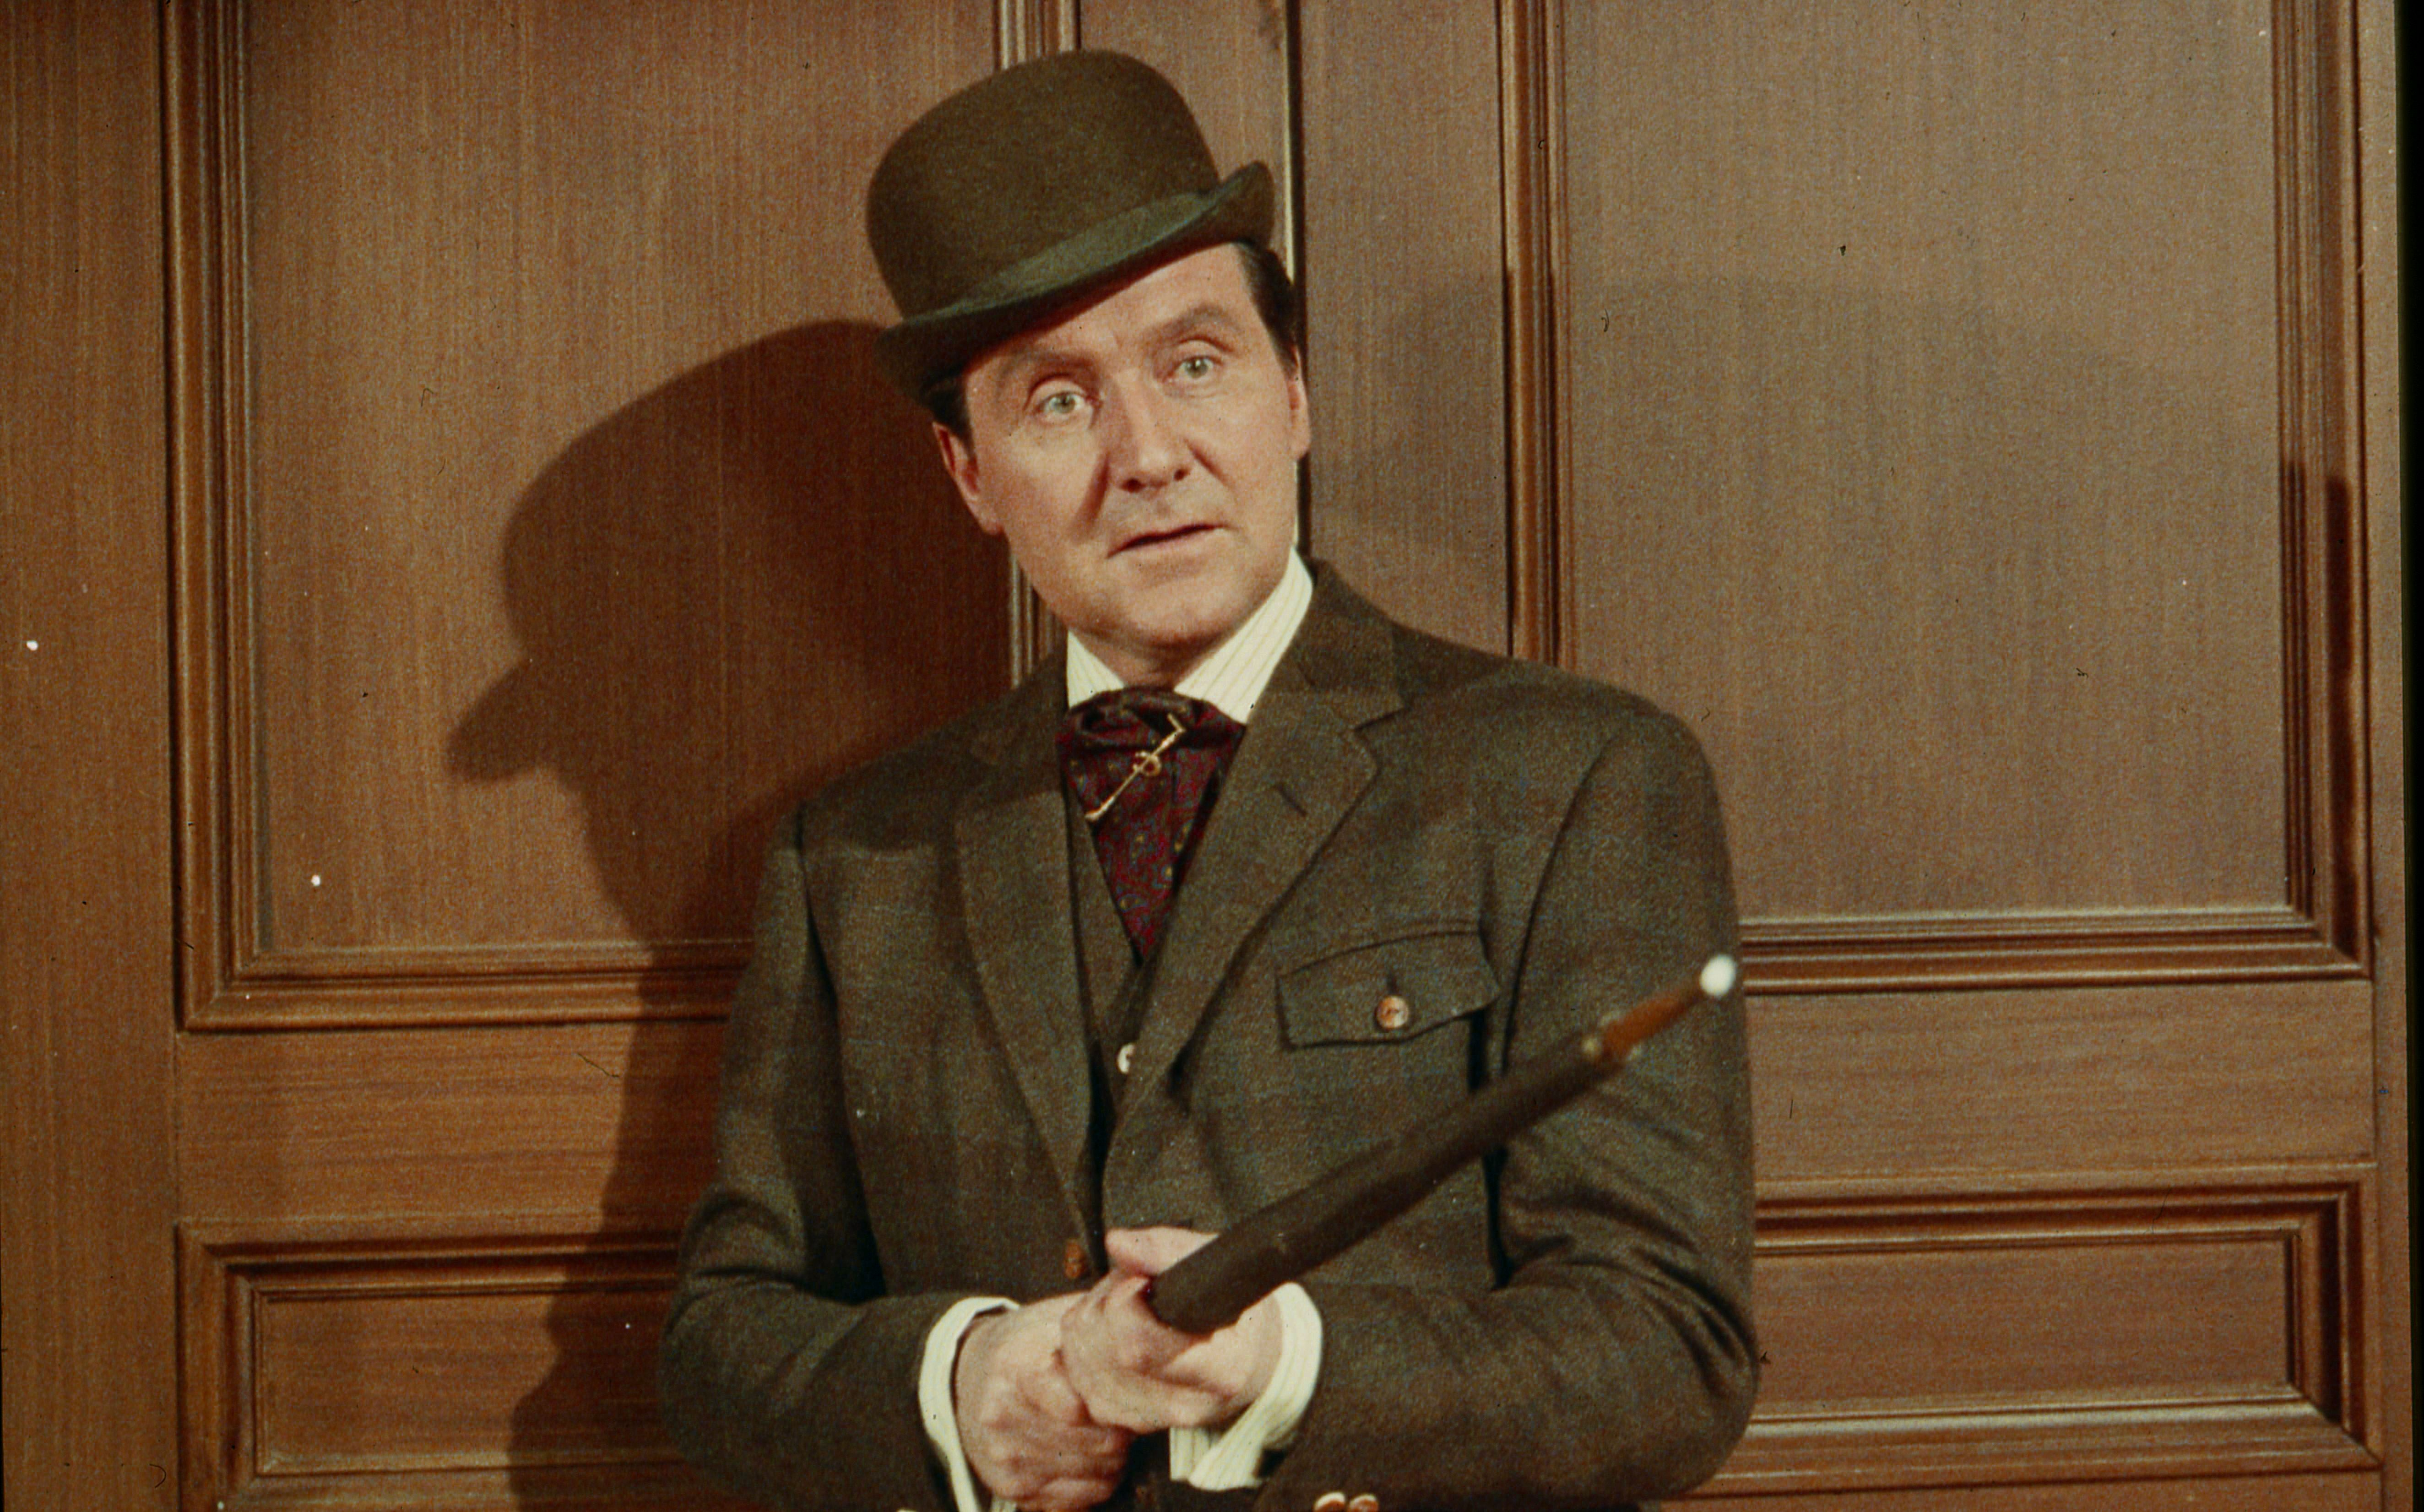 June 25, 2015 - Actor PATRICK MACNEE, star of 'The Avengers' TV series, has died in California at the age of 93. The Briton,